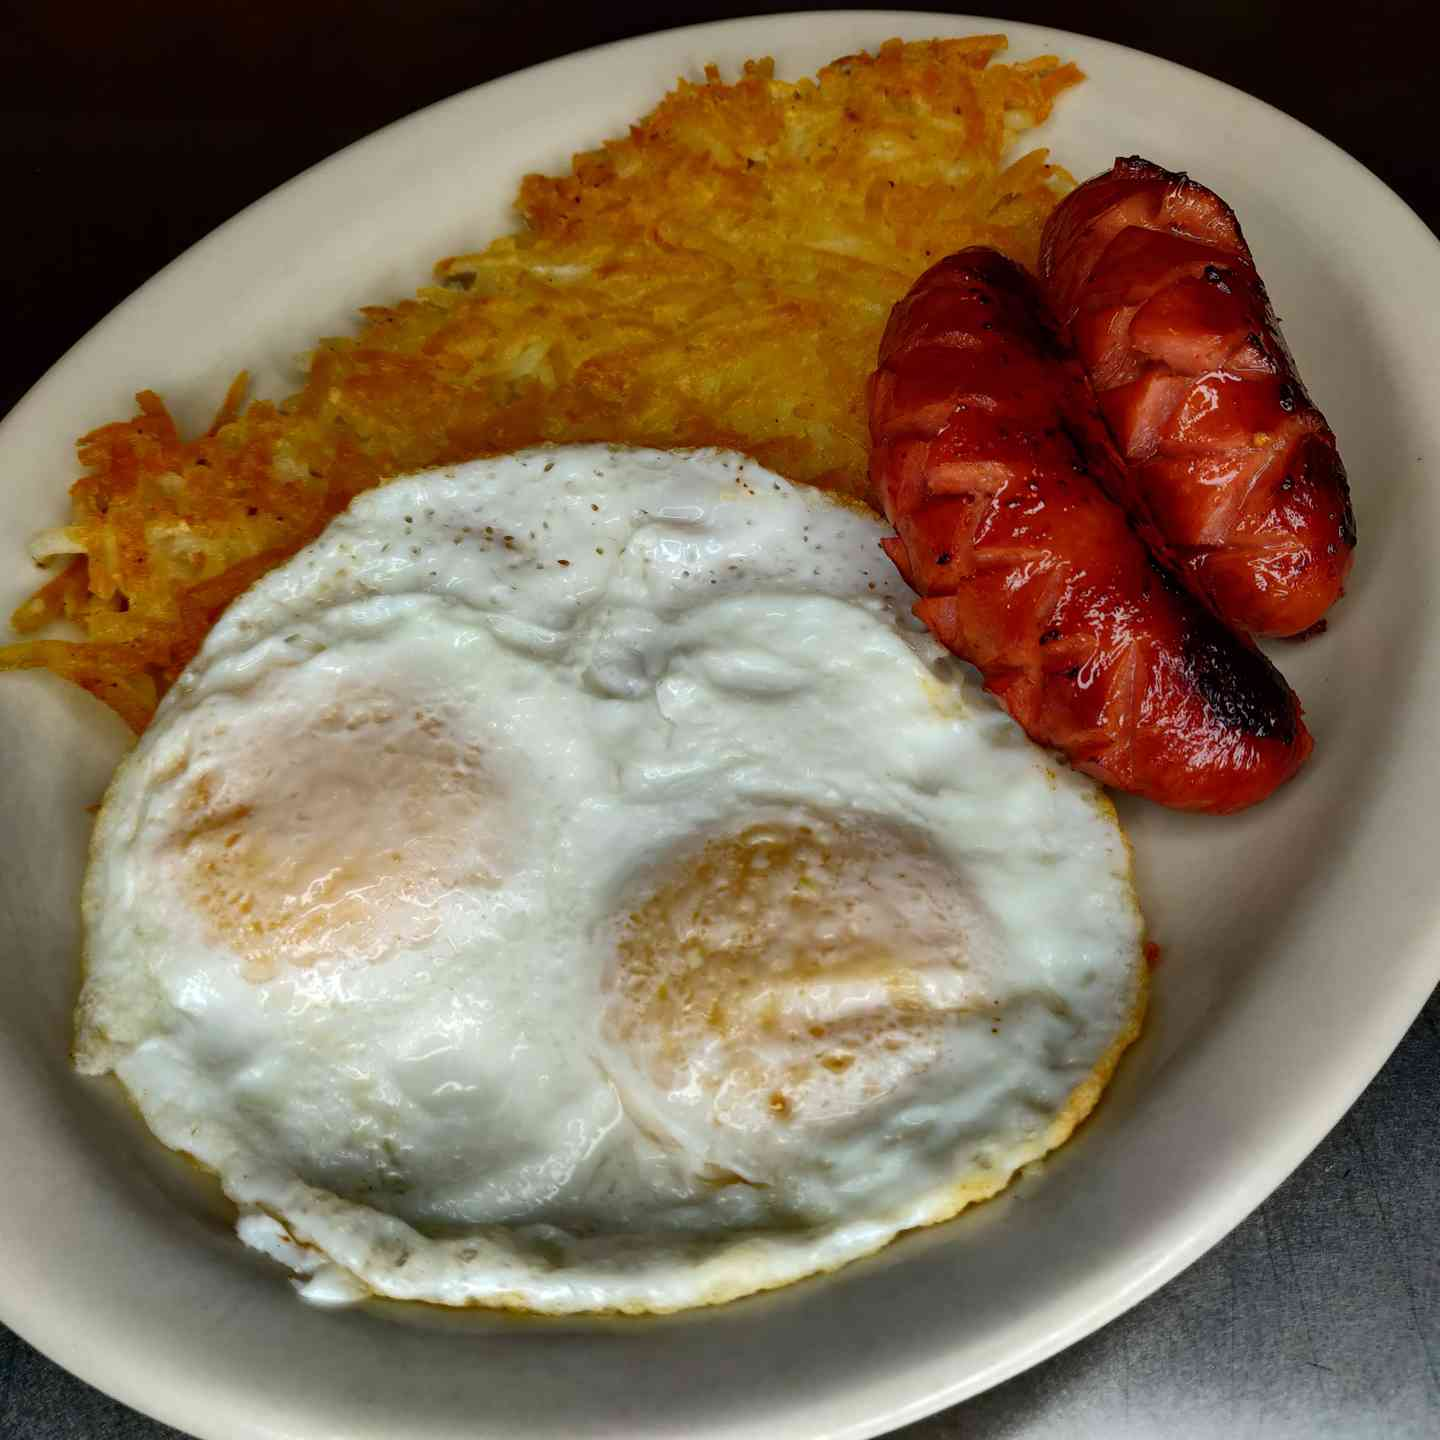 Hot Links and Eggs